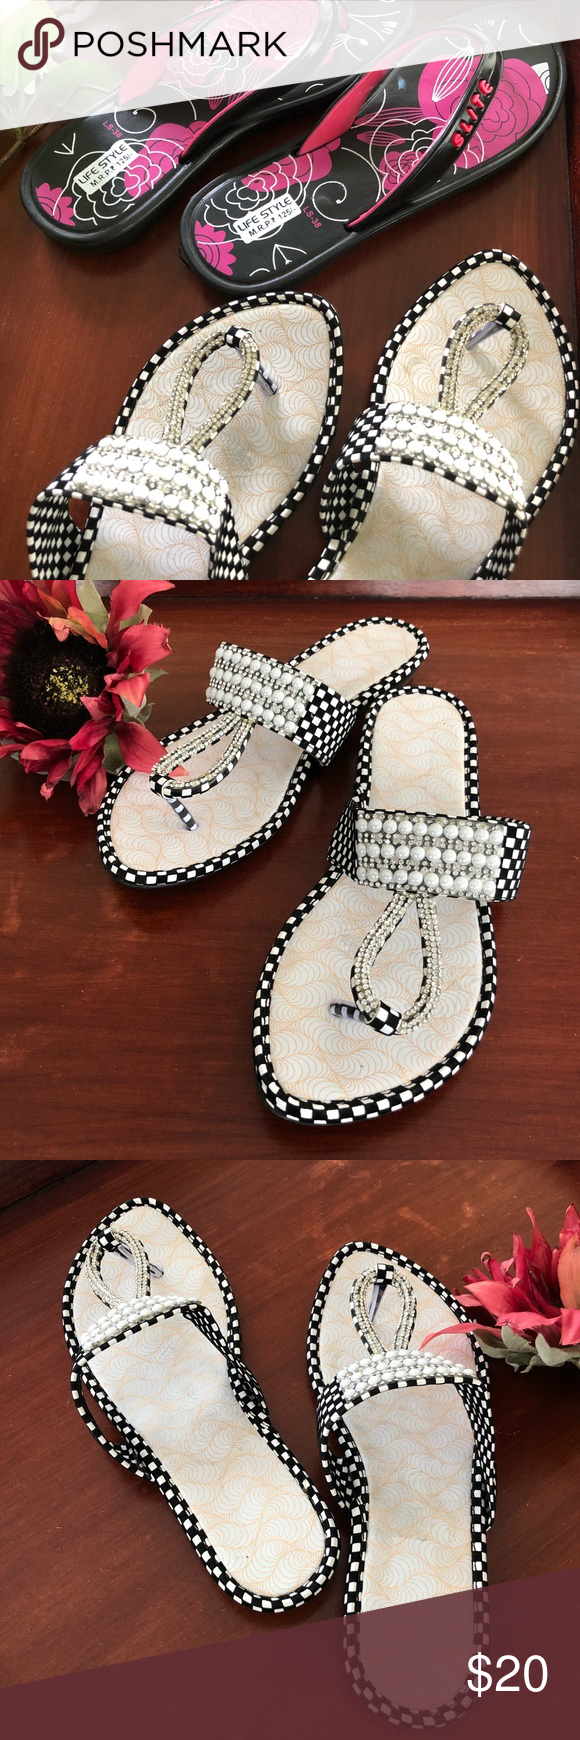 cc9263d5d3f A set of flip flops Asian flip flops with Asian sizes on the bottom!!!! One  is sliver and black 2nd one is pink and black Women s USA size about 6 to 6  1 2 ...